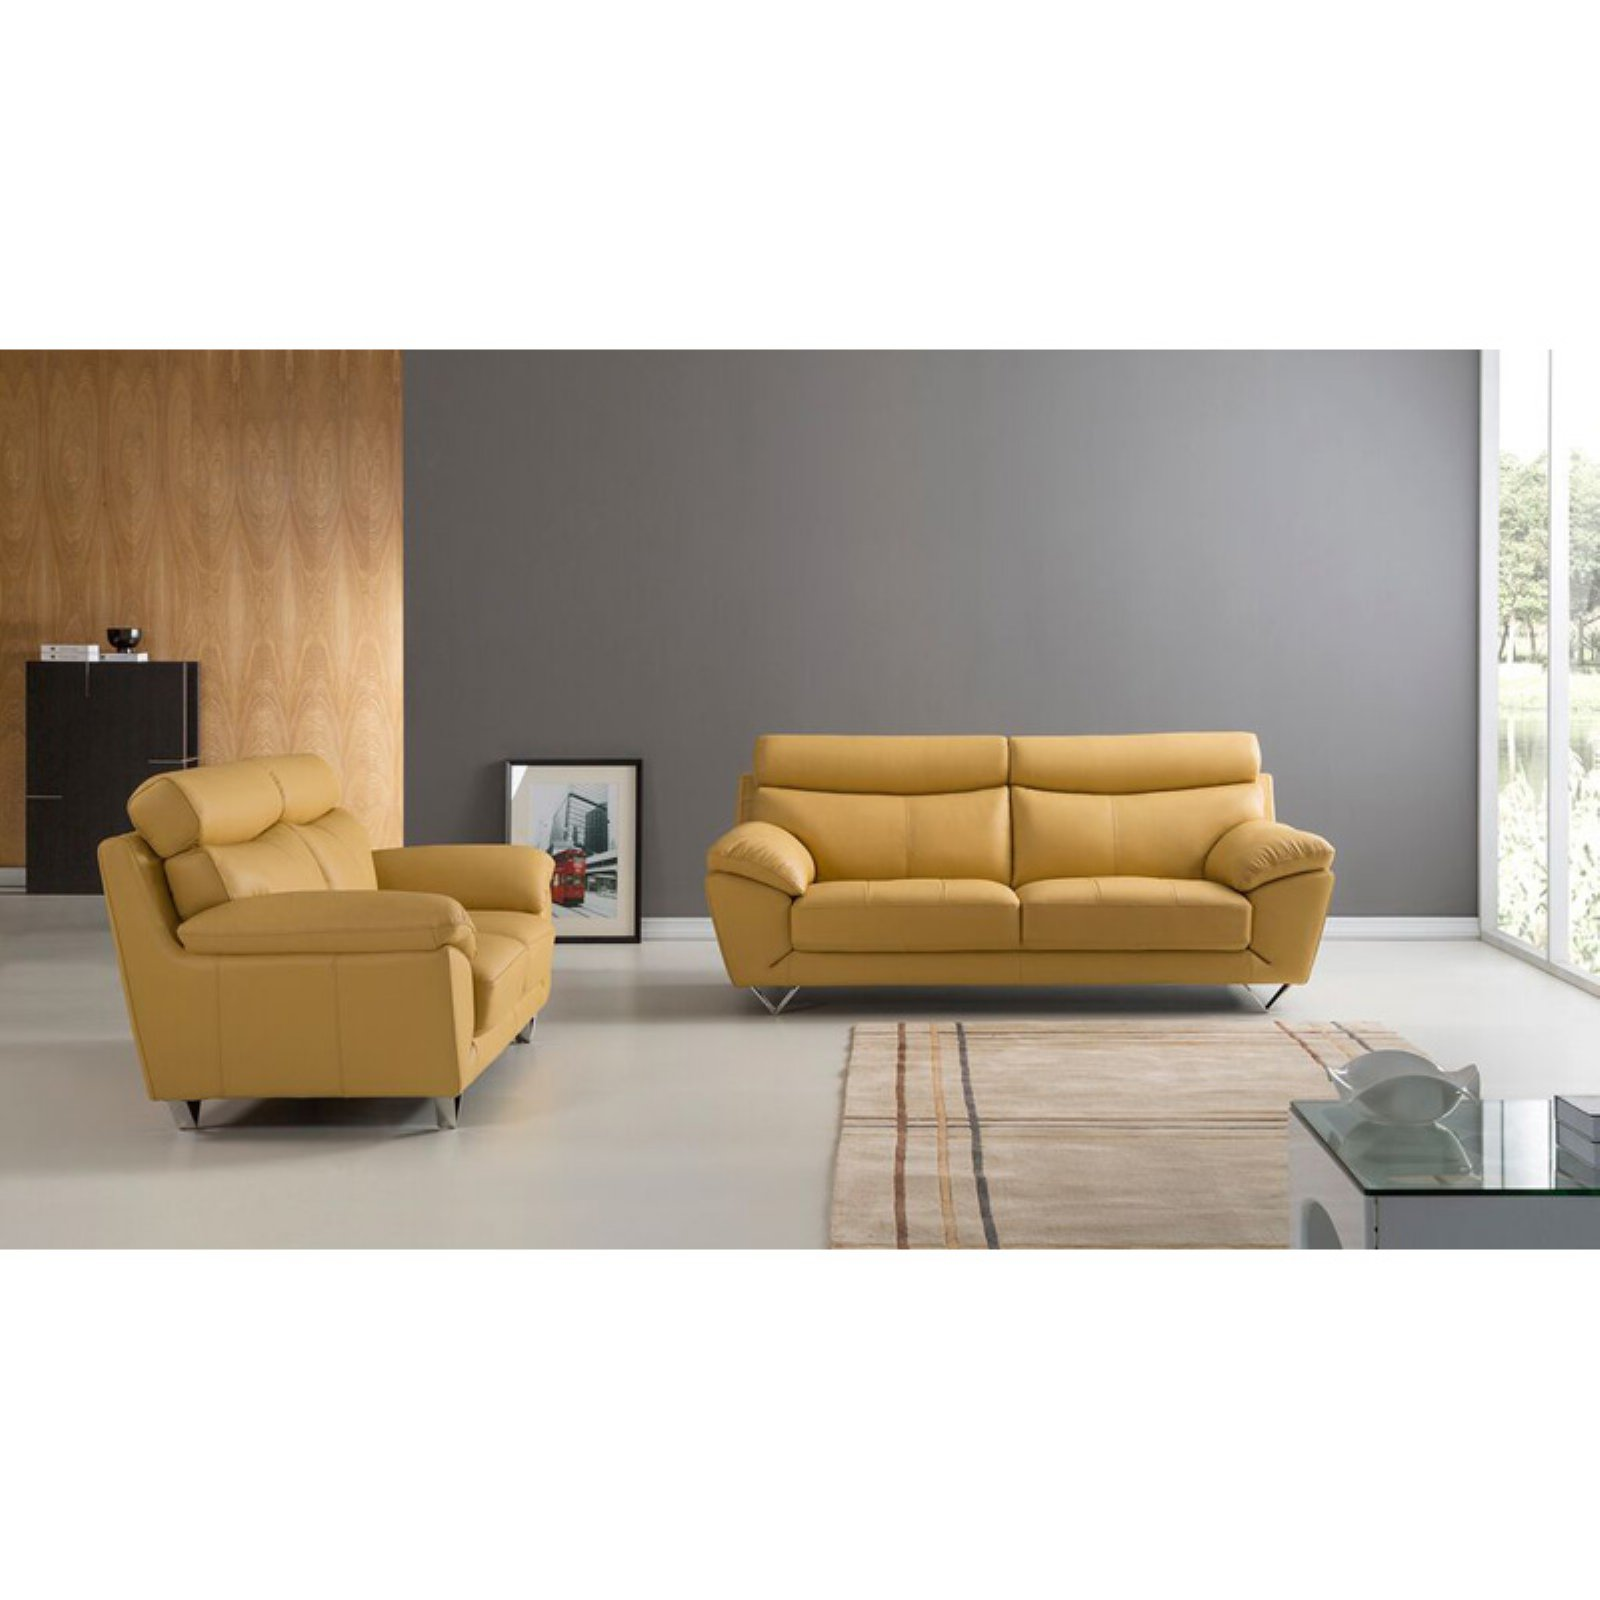 Groovy American Eagle Furniture Brighton Sofa With Plush Bustle Gmtry Best Dining Table And Chair Ideas Images Gmtryco